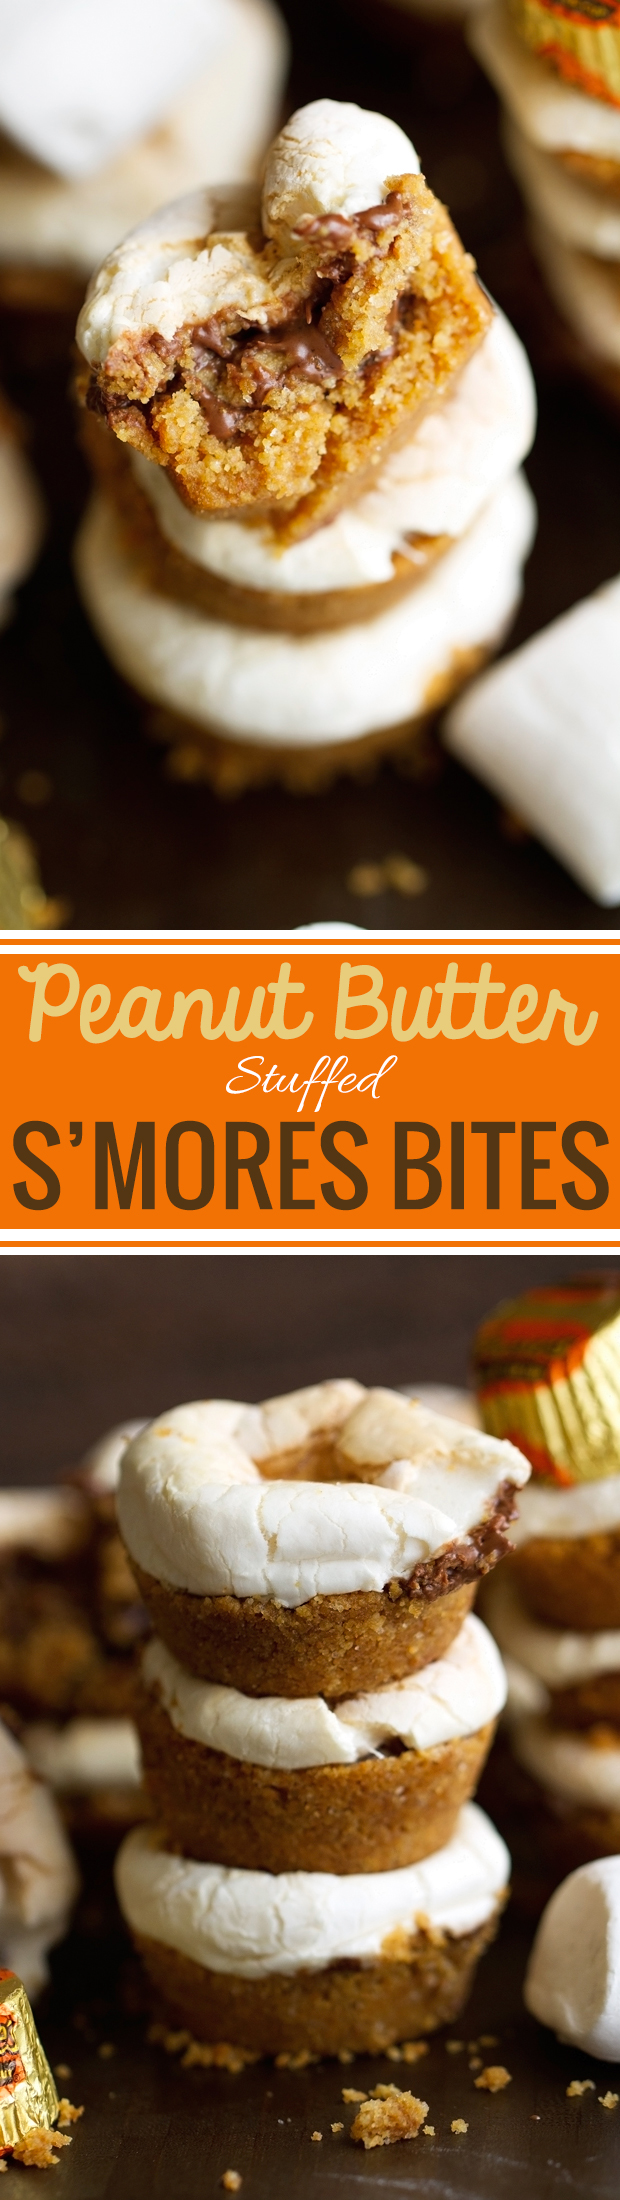 5 Ingredient Peanut Butter Stuffed S'mores Bites - These contain a peanut butter cup in the center and are so delish! #smoresbites #smores #peanutbutter #peanutbuttercups   Littlespicejar.com